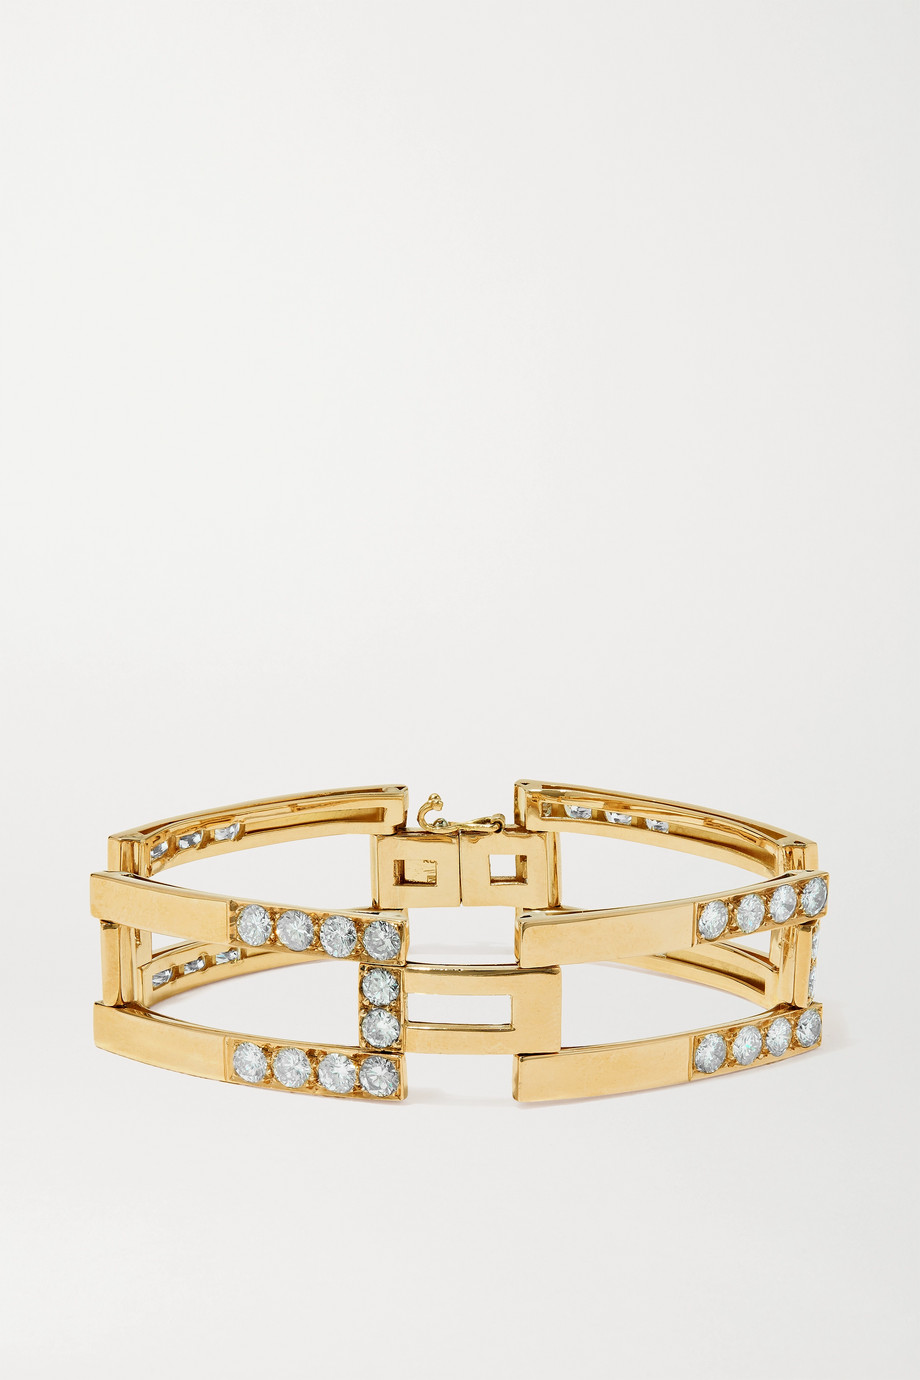 FRED LEIGHTON 1970s 18-karat gold diamond bracelet